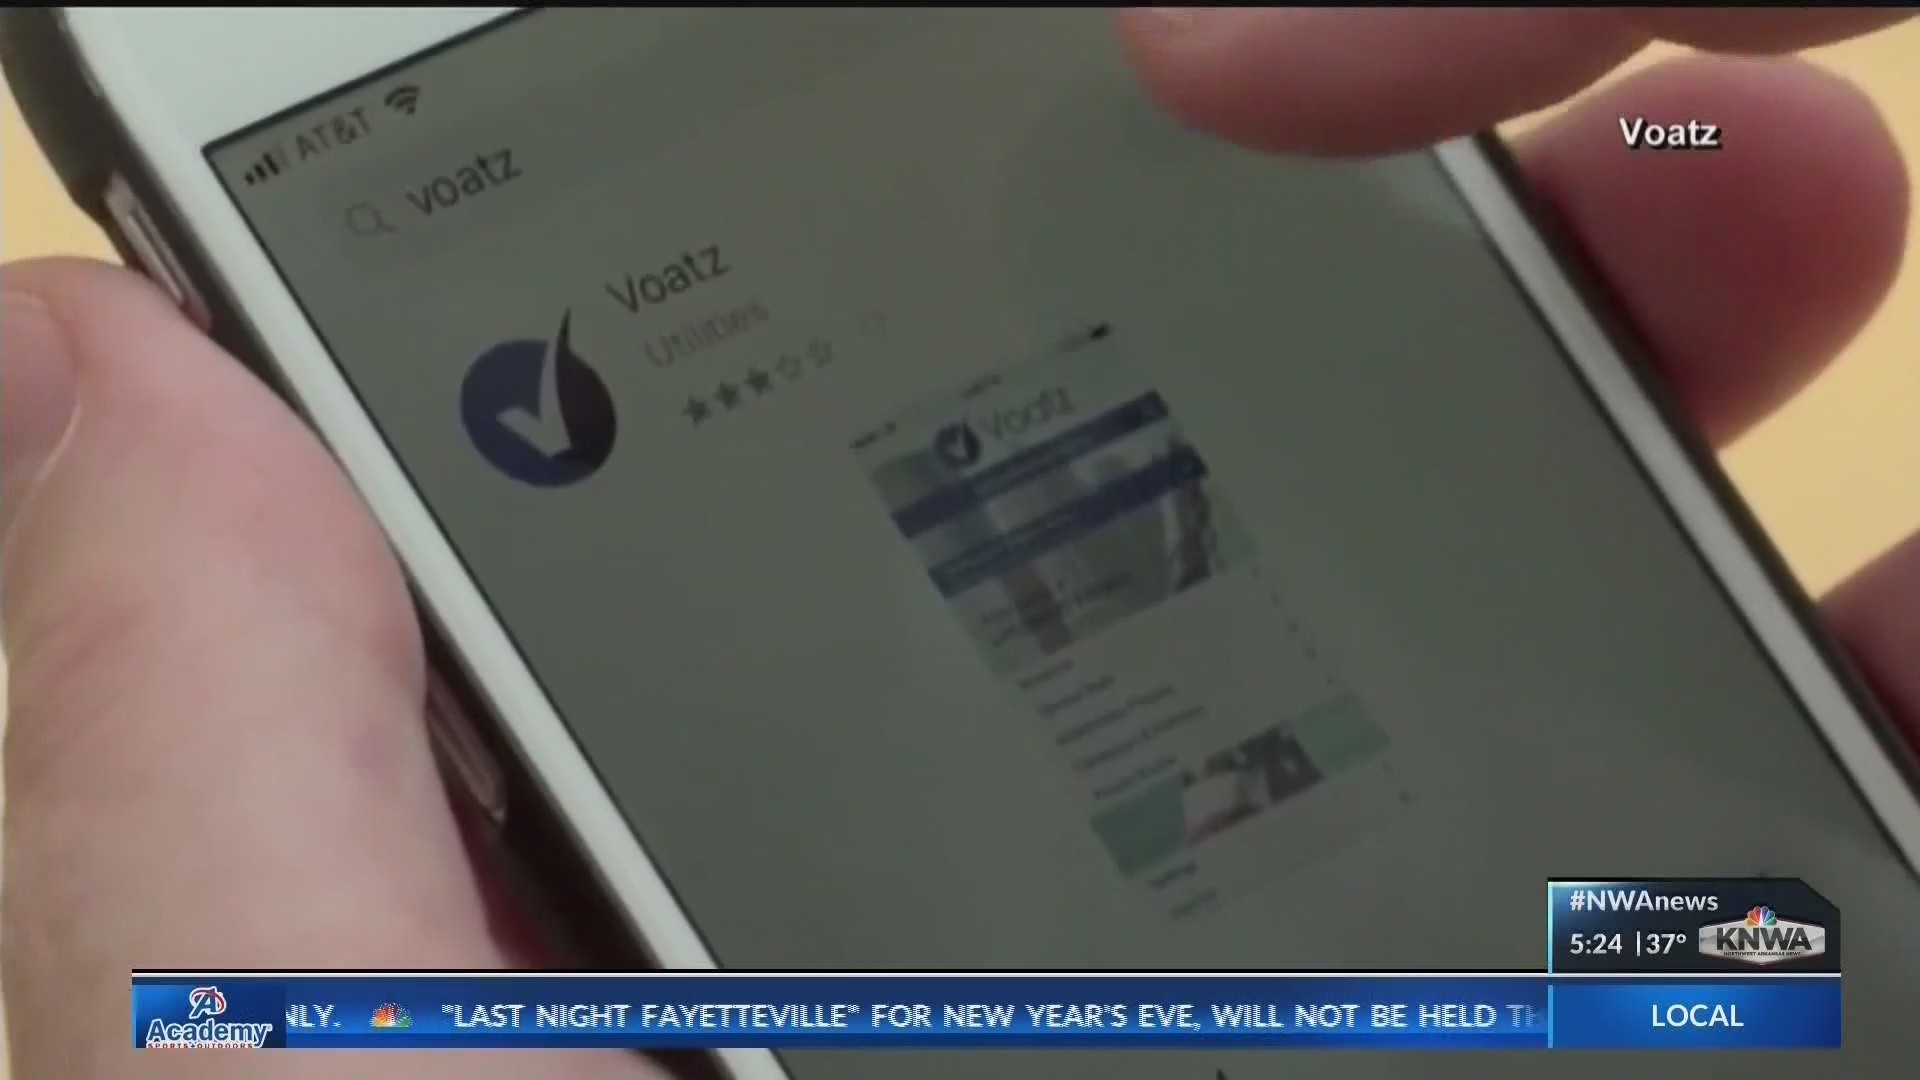 Voatz_App_Helps_People_Cast_Ballots_on_S_1_20181102110848